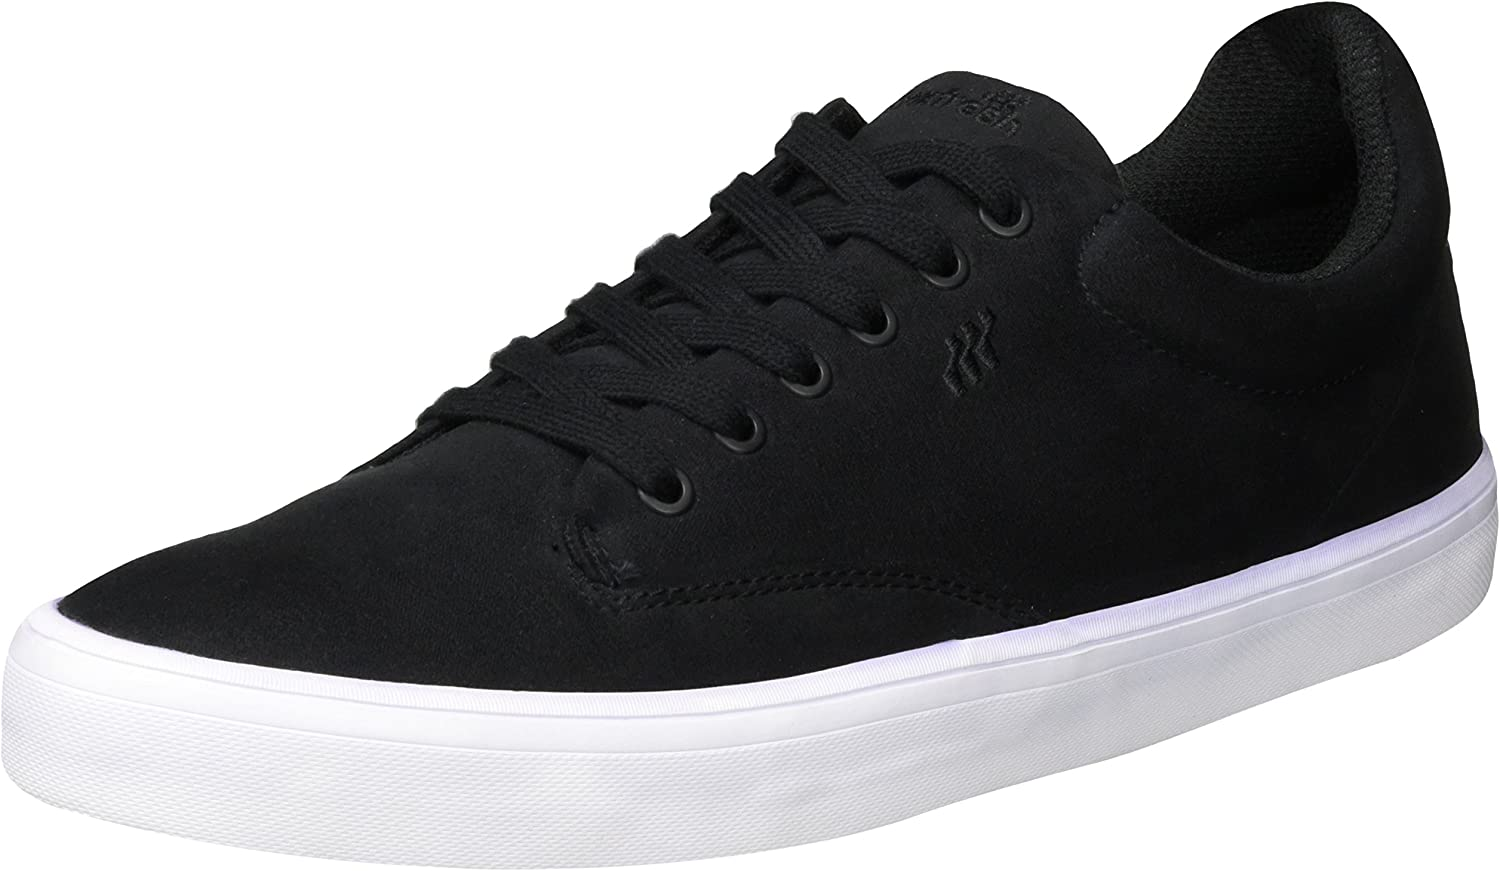 Boxfresh Esb Sh MFP Blk, Men's Low-Top